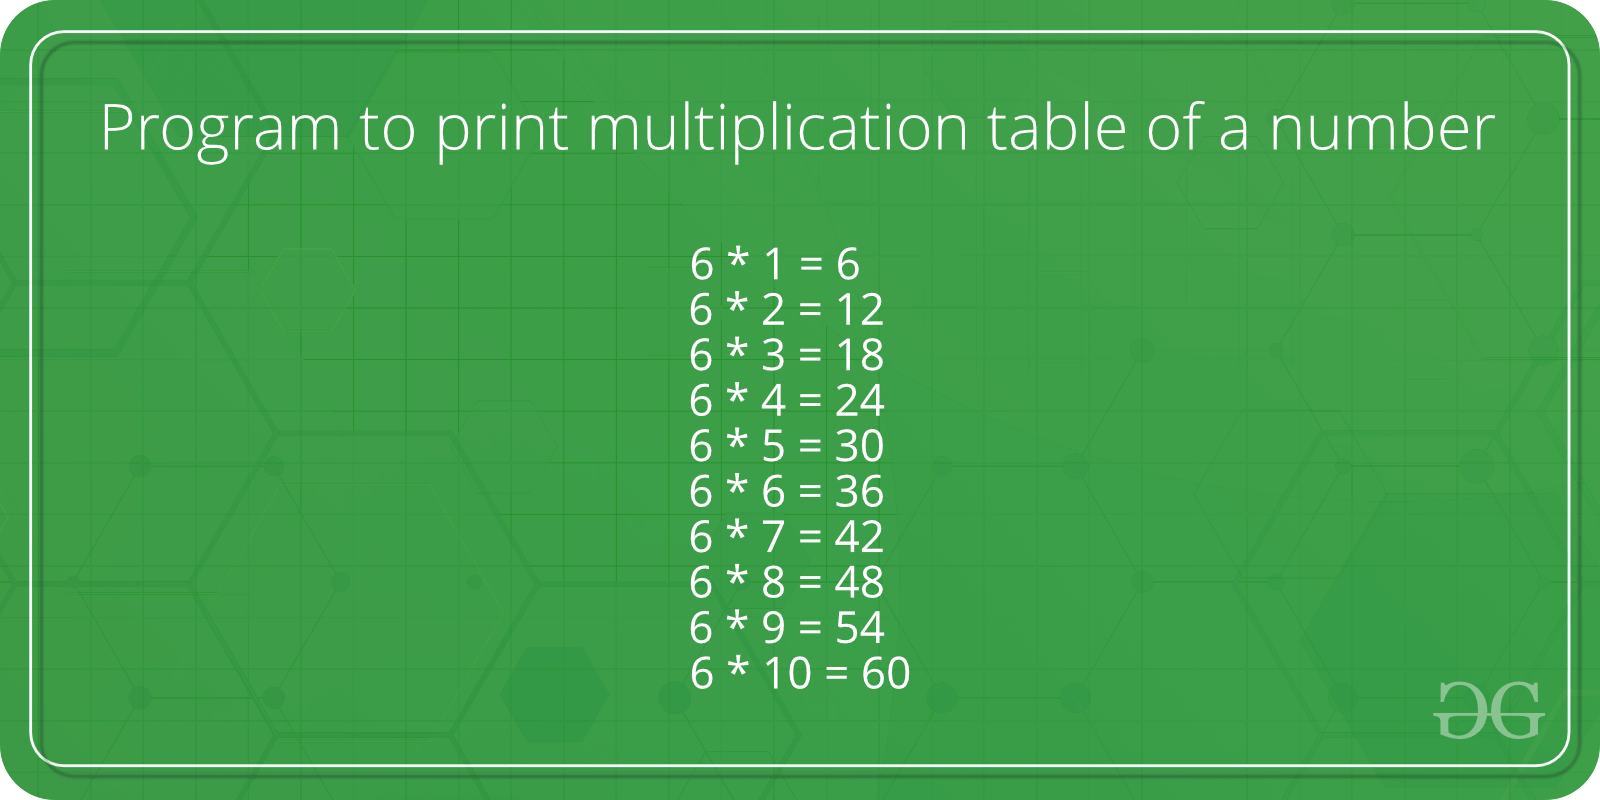 Program To Print Multiplication Table Of A Number